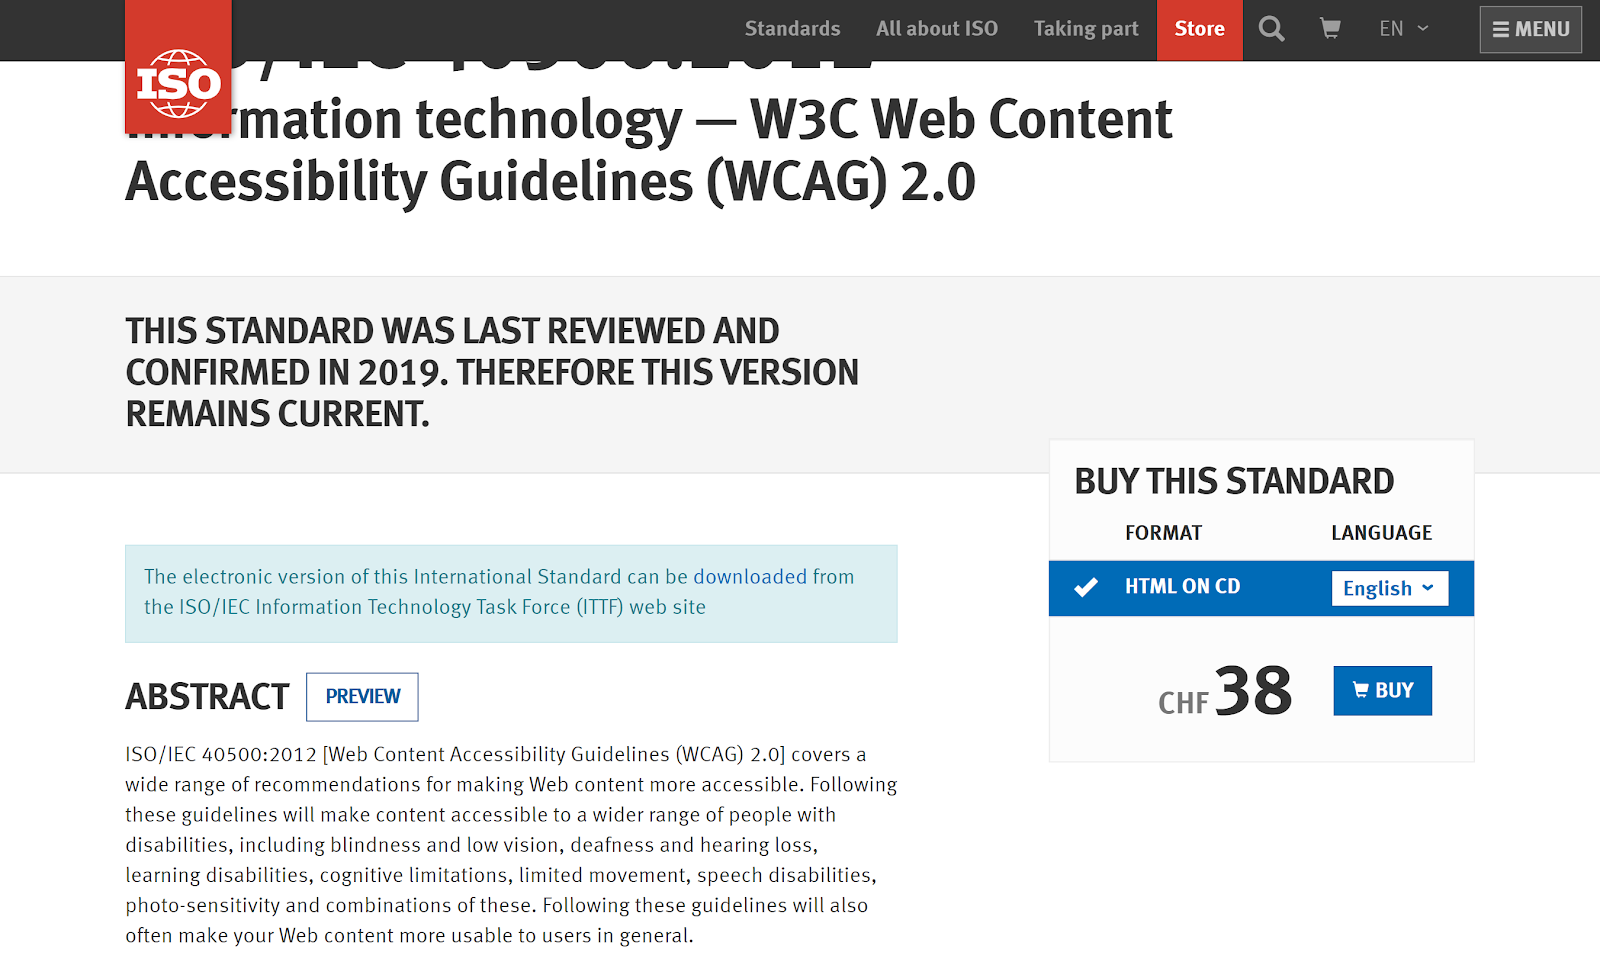 screenshot of the web design standards from ISO